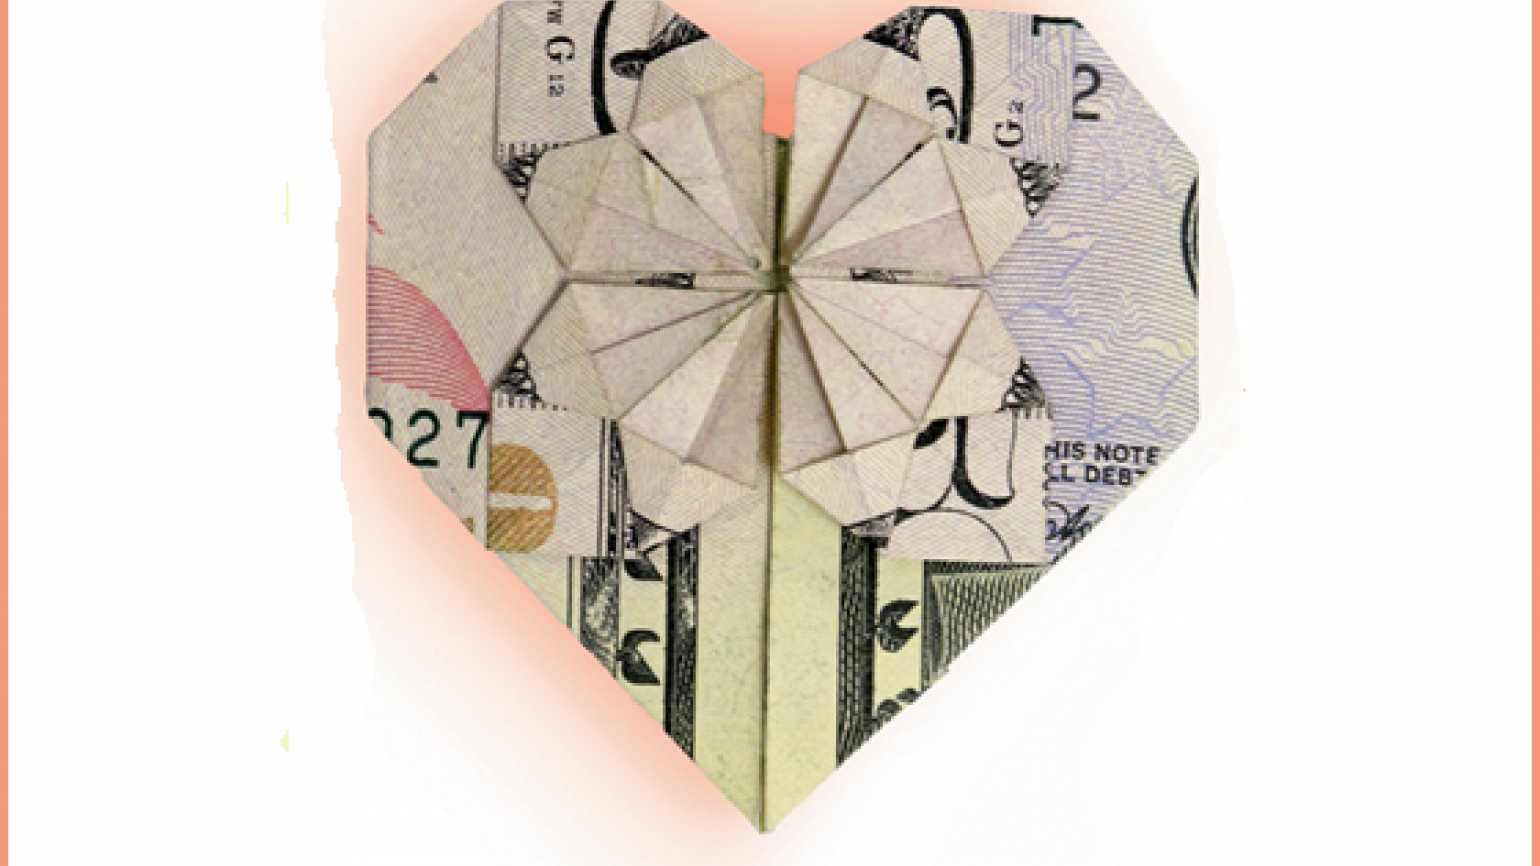 An artist's rendering of a fifty-dollar bill folded into a heart